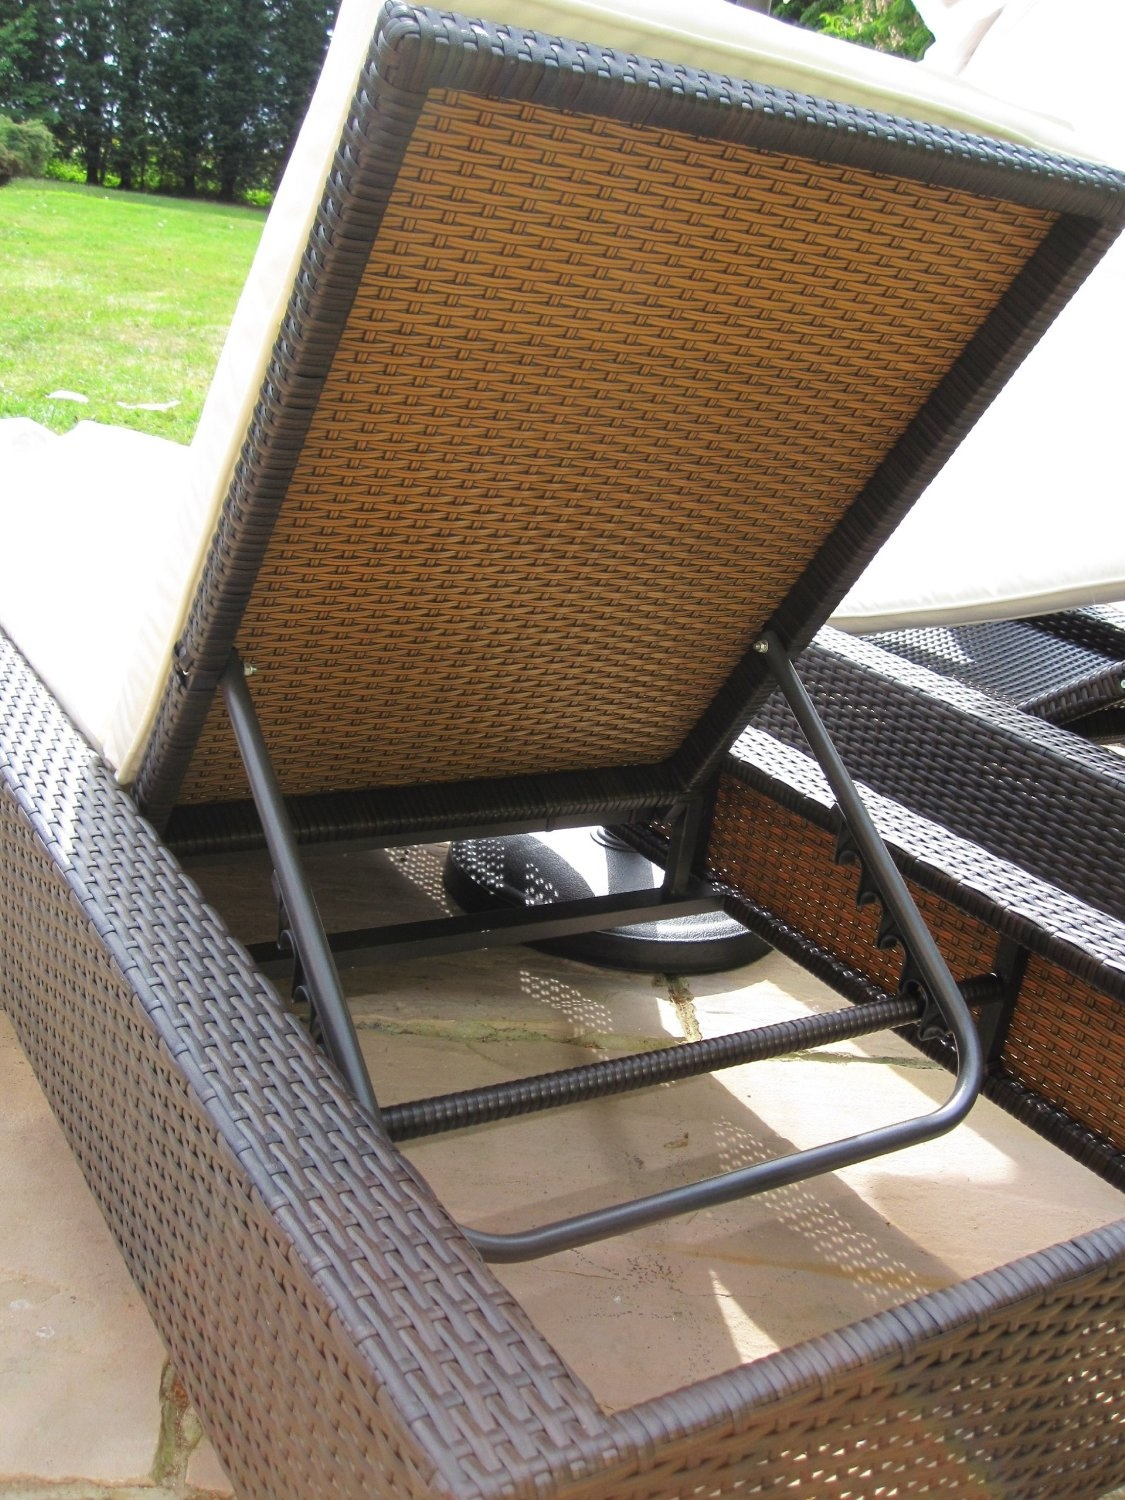 Bali Outdoor Furniture Homeware: Buy Online from Fishpond.co.nz